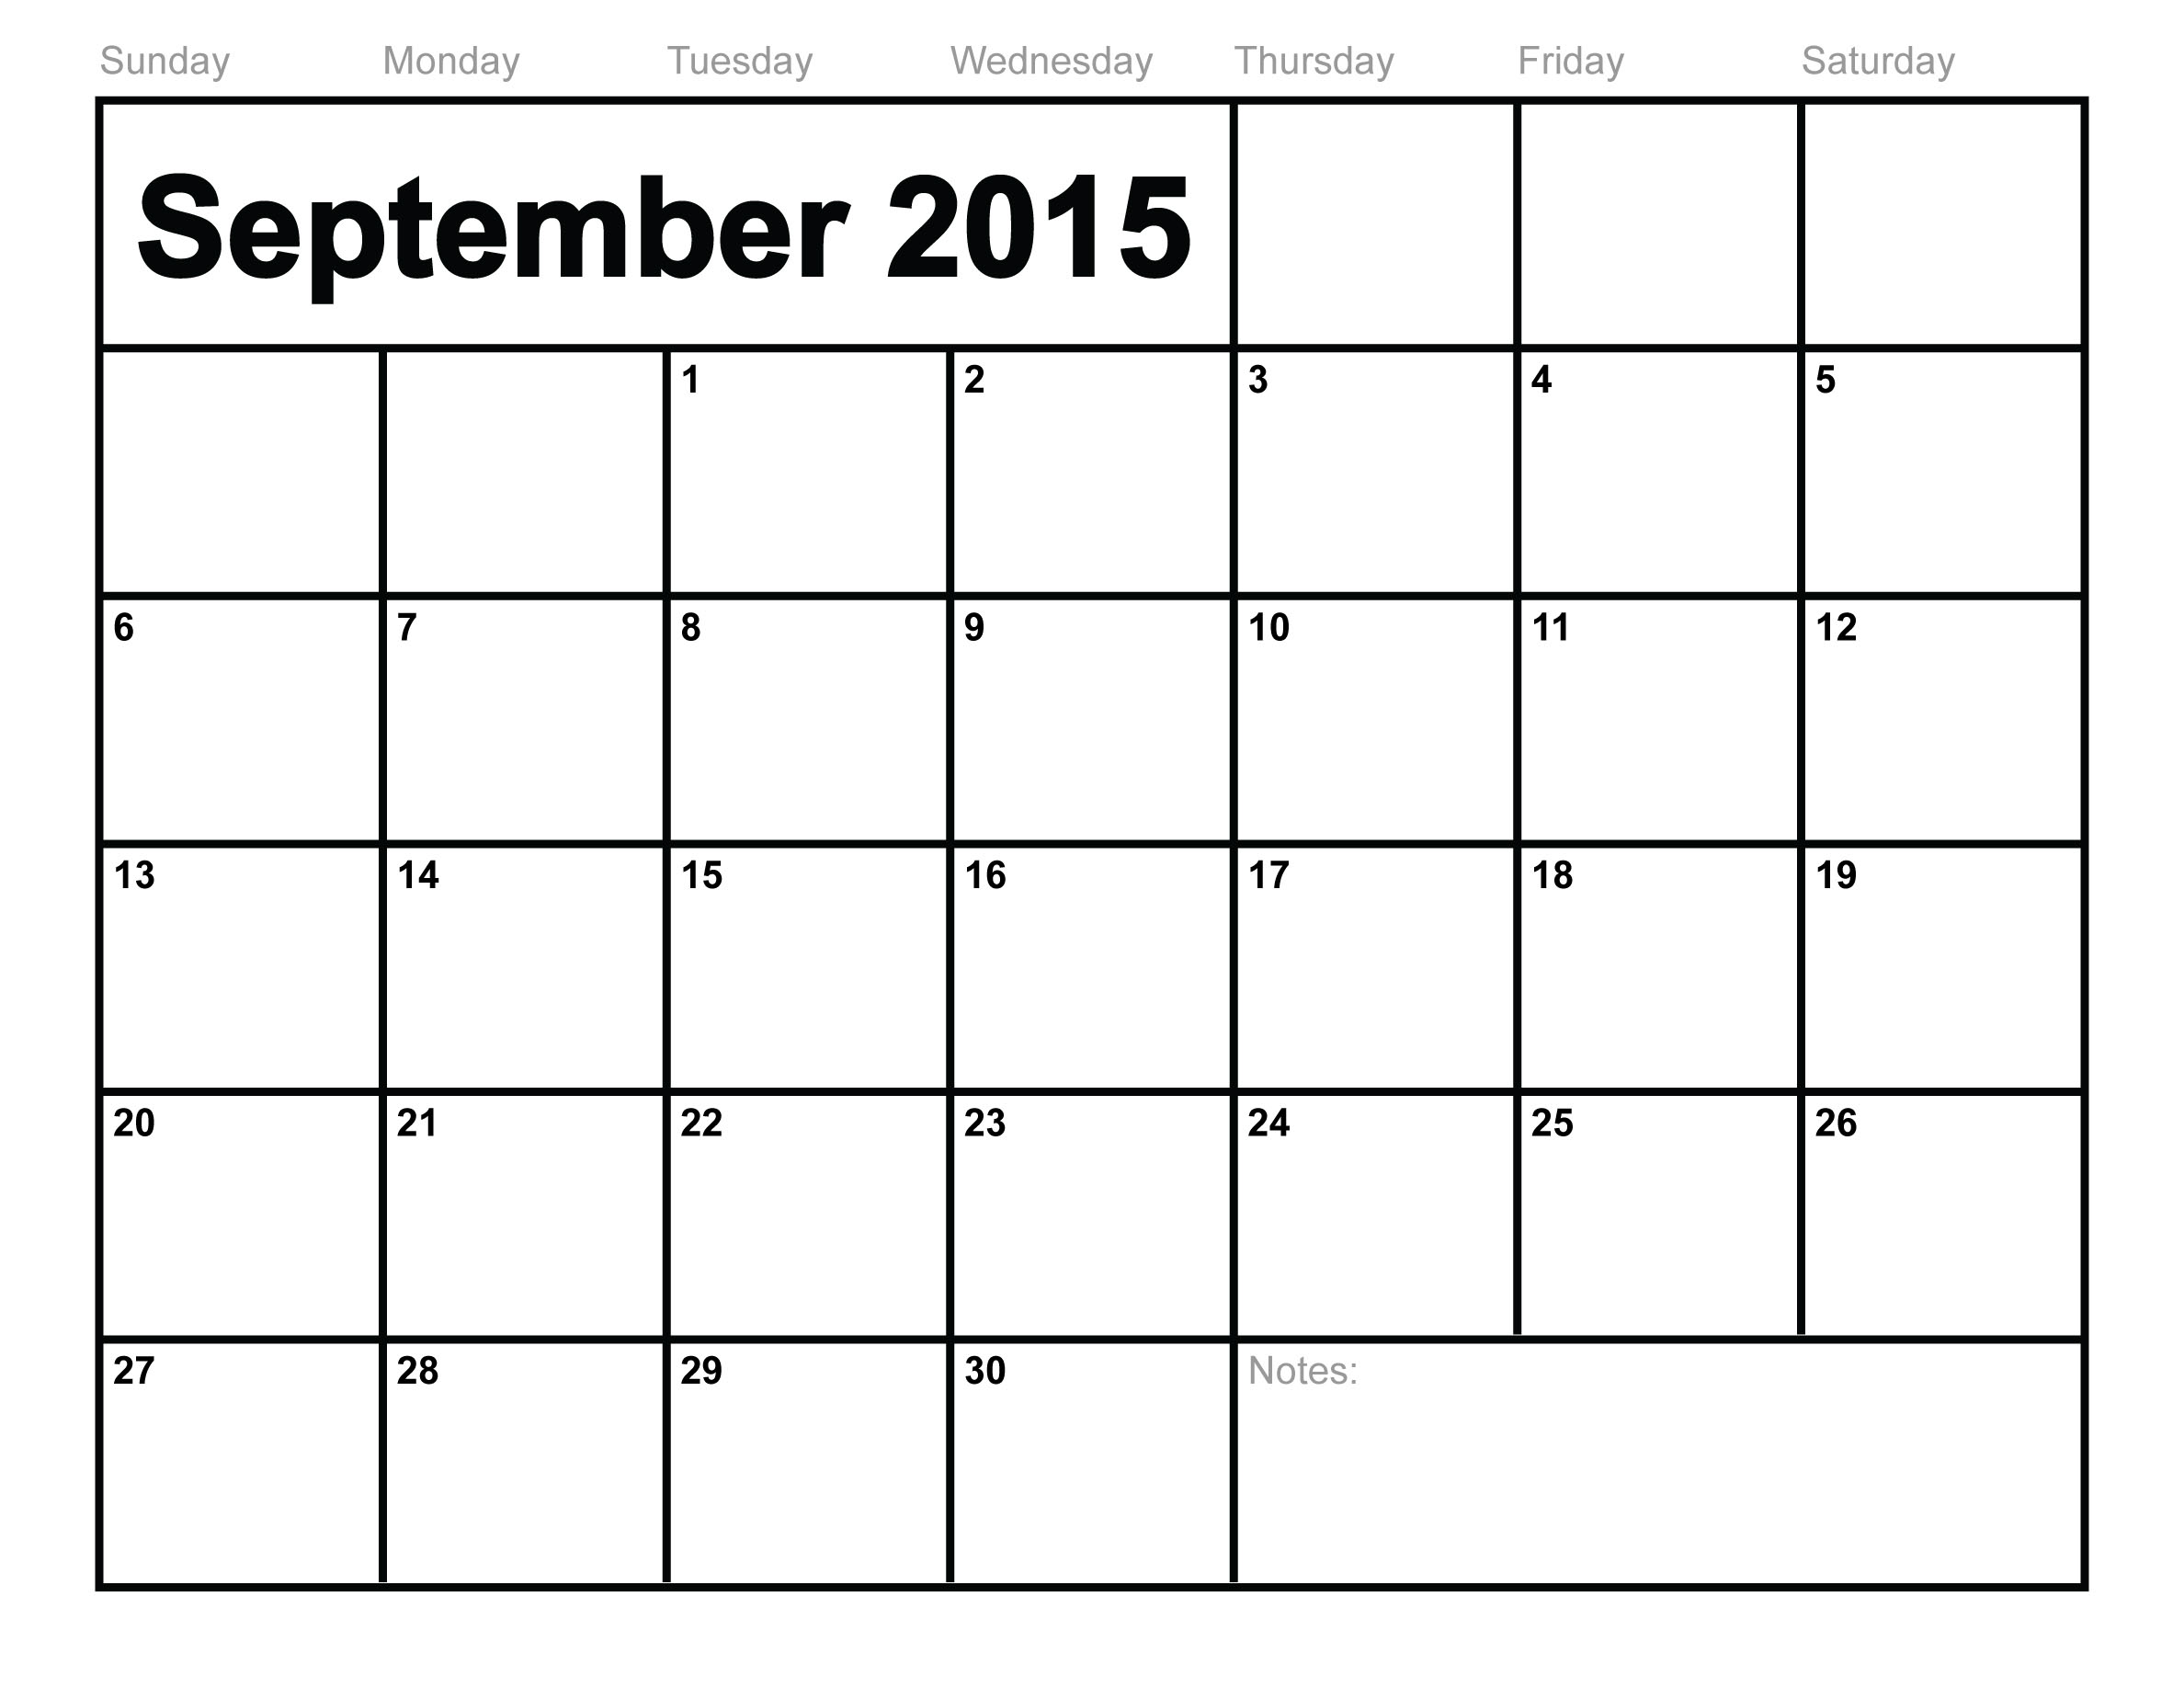 September 2015 Calendar Printable Template (8 Templates)